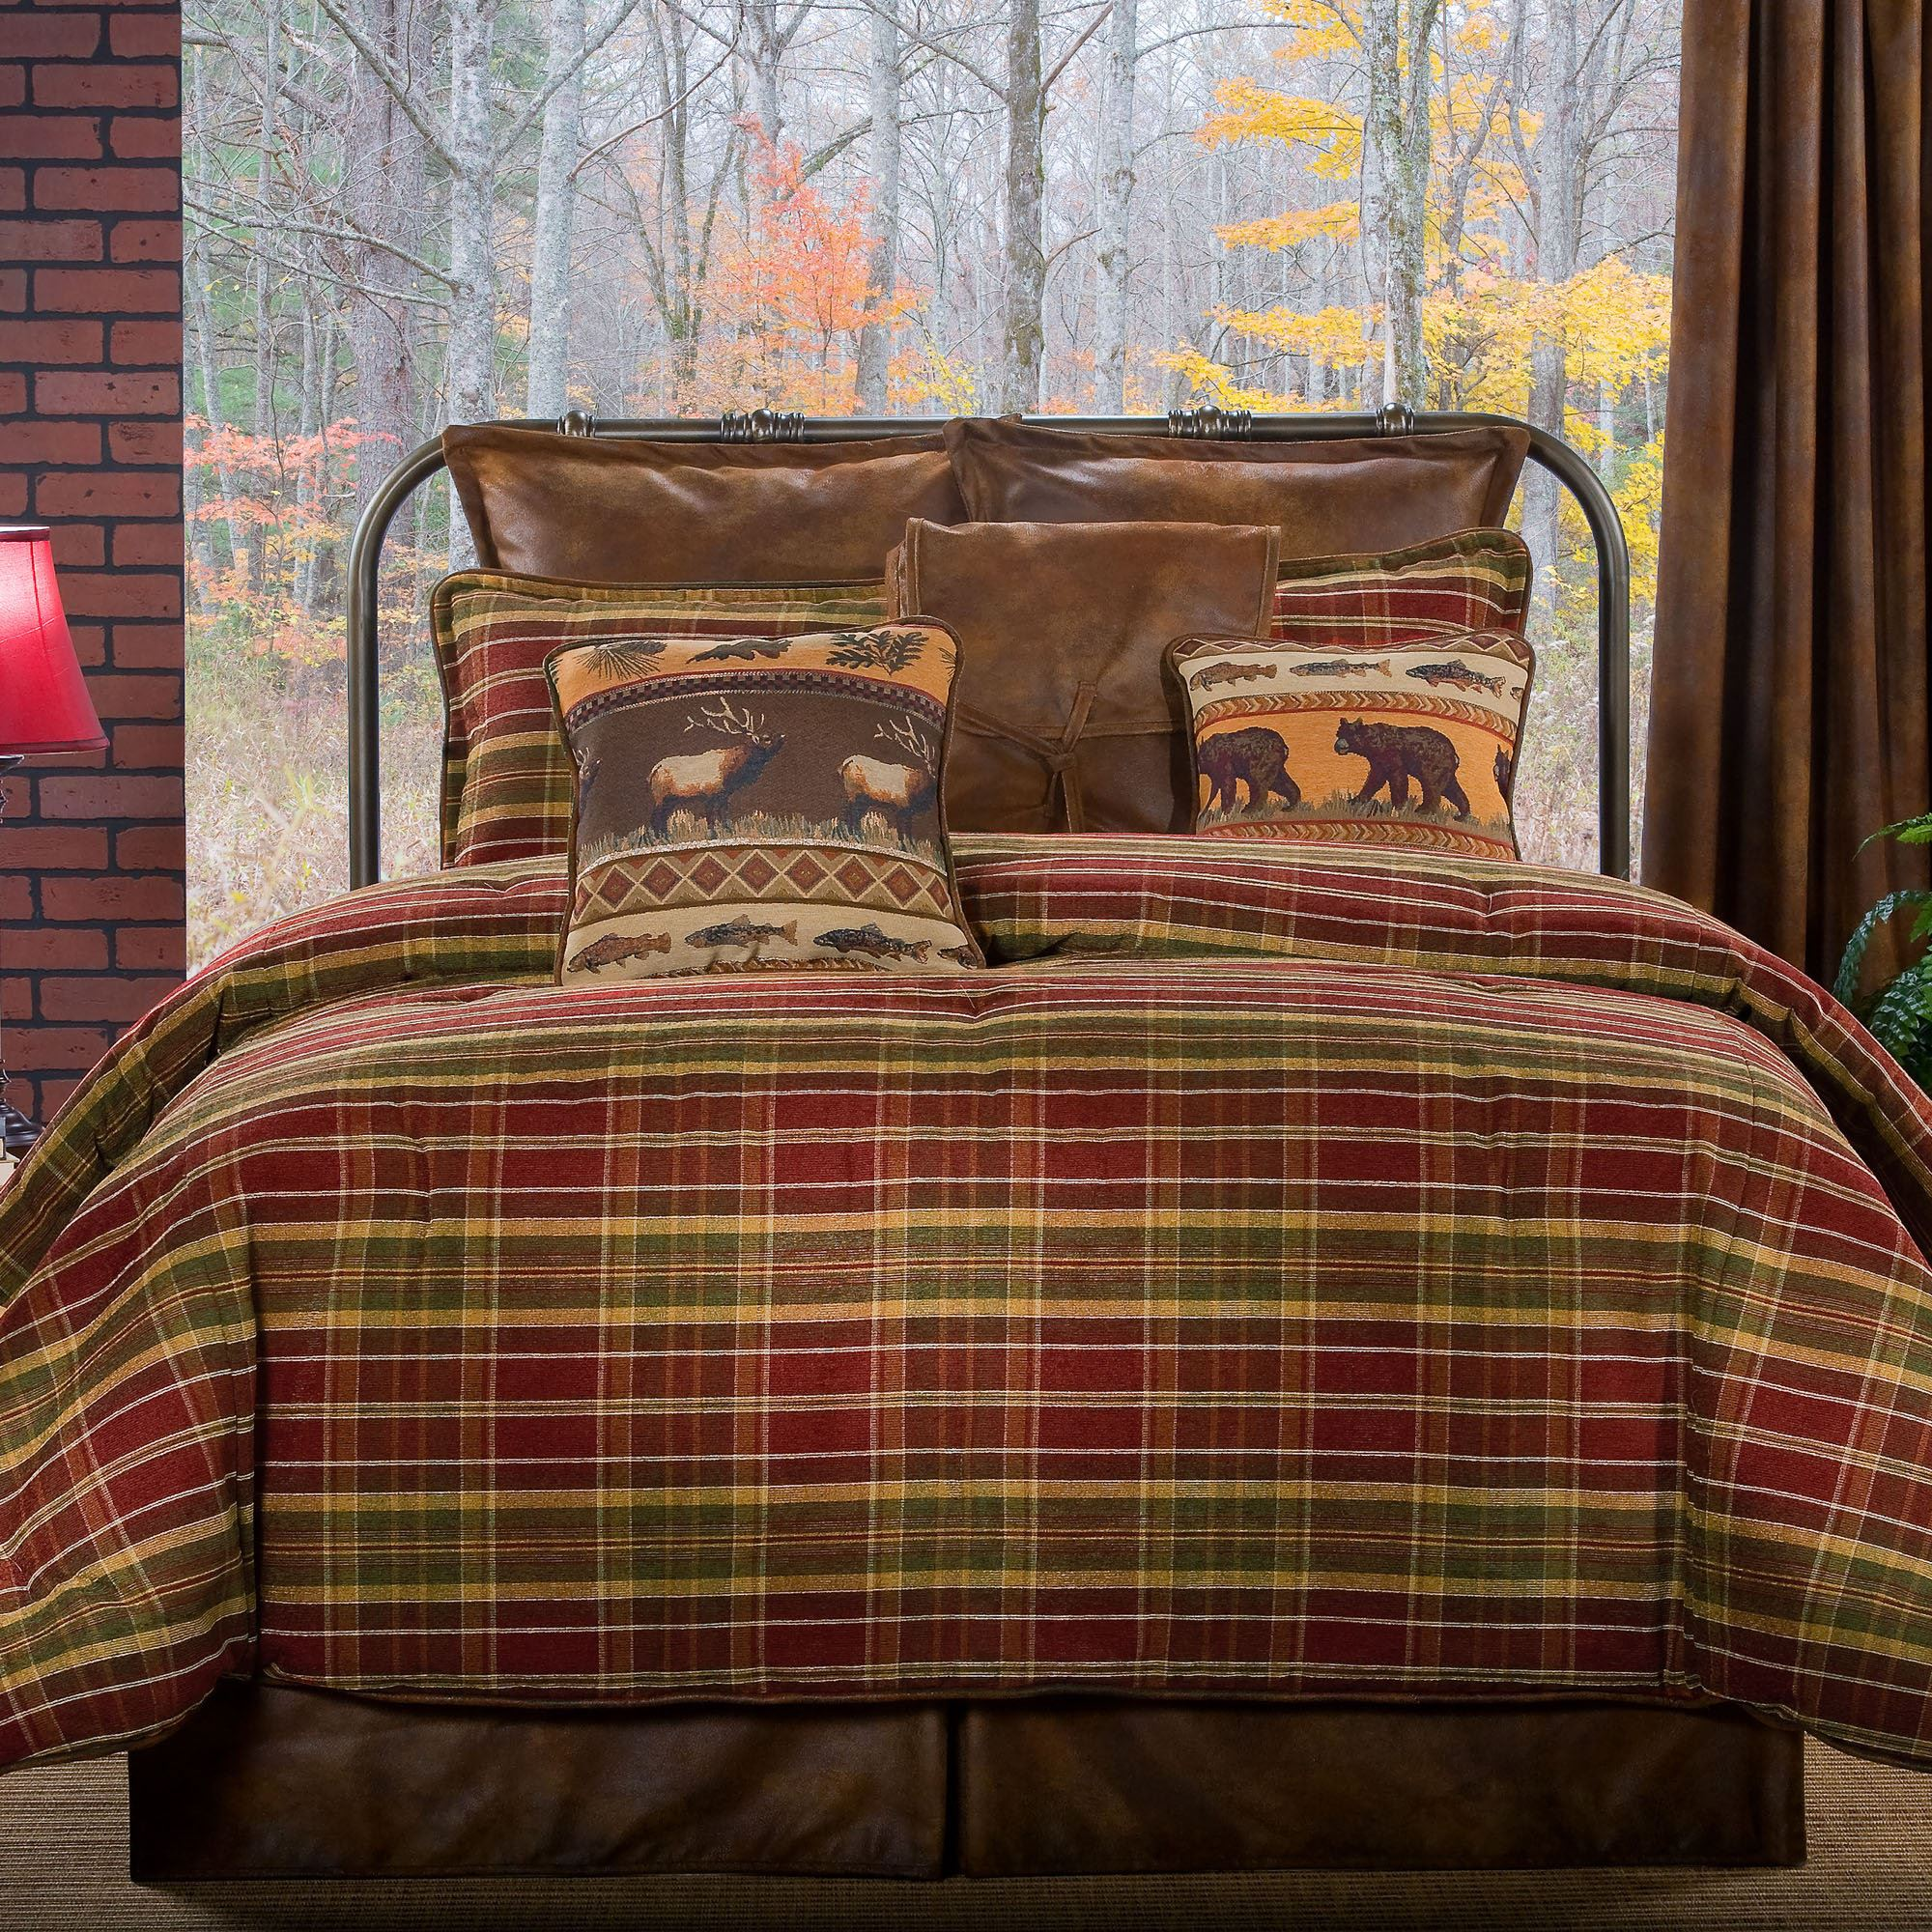 Awesome plaid comforter with rugs and wooden floor plus headboard and sidetable also pillows